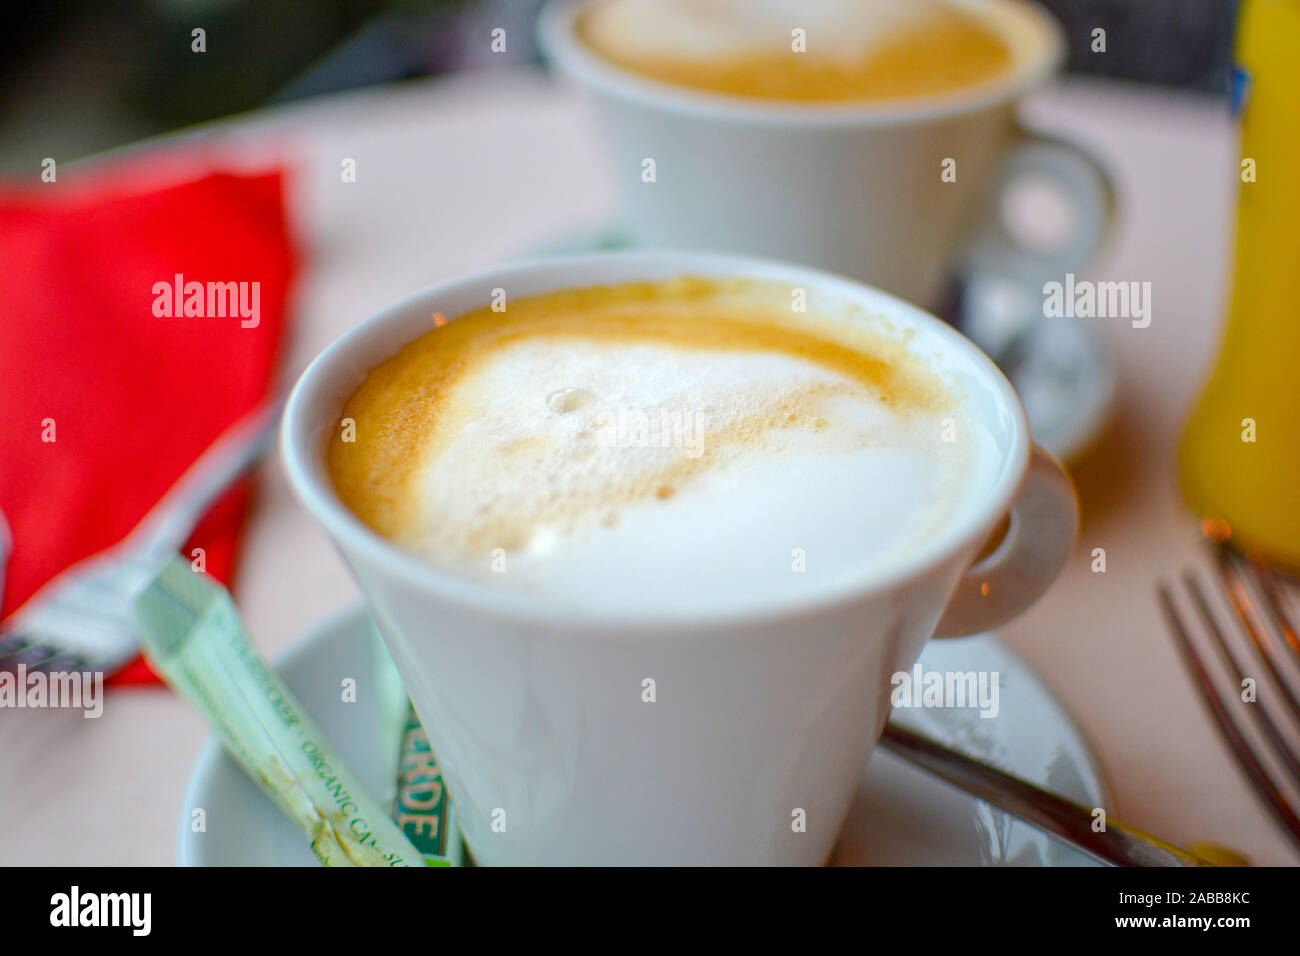 Close up of a table setting with two cups of coffee or cappuccino with milk froth on top. Stock Photo